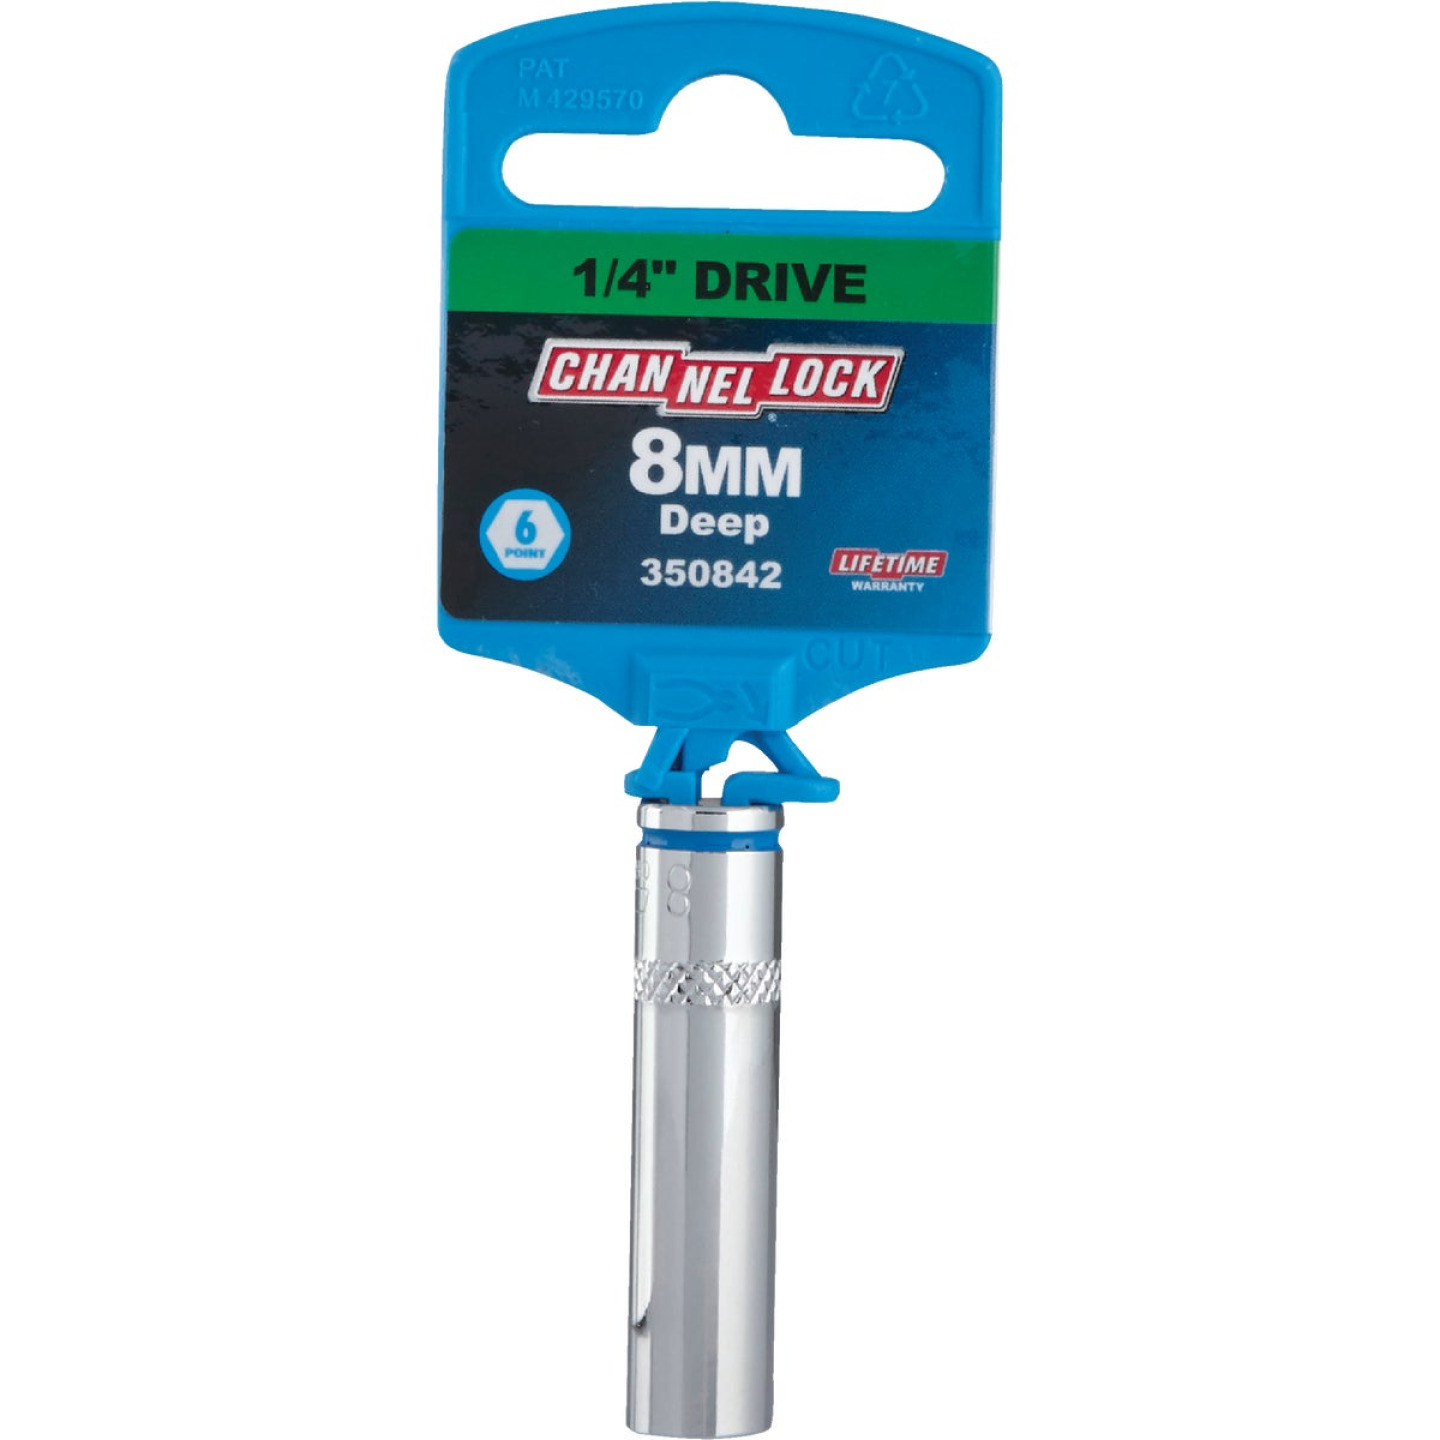 Channellock 1/4 In. Drive 8 mm 6-Point Deep Metric Socket Image 2